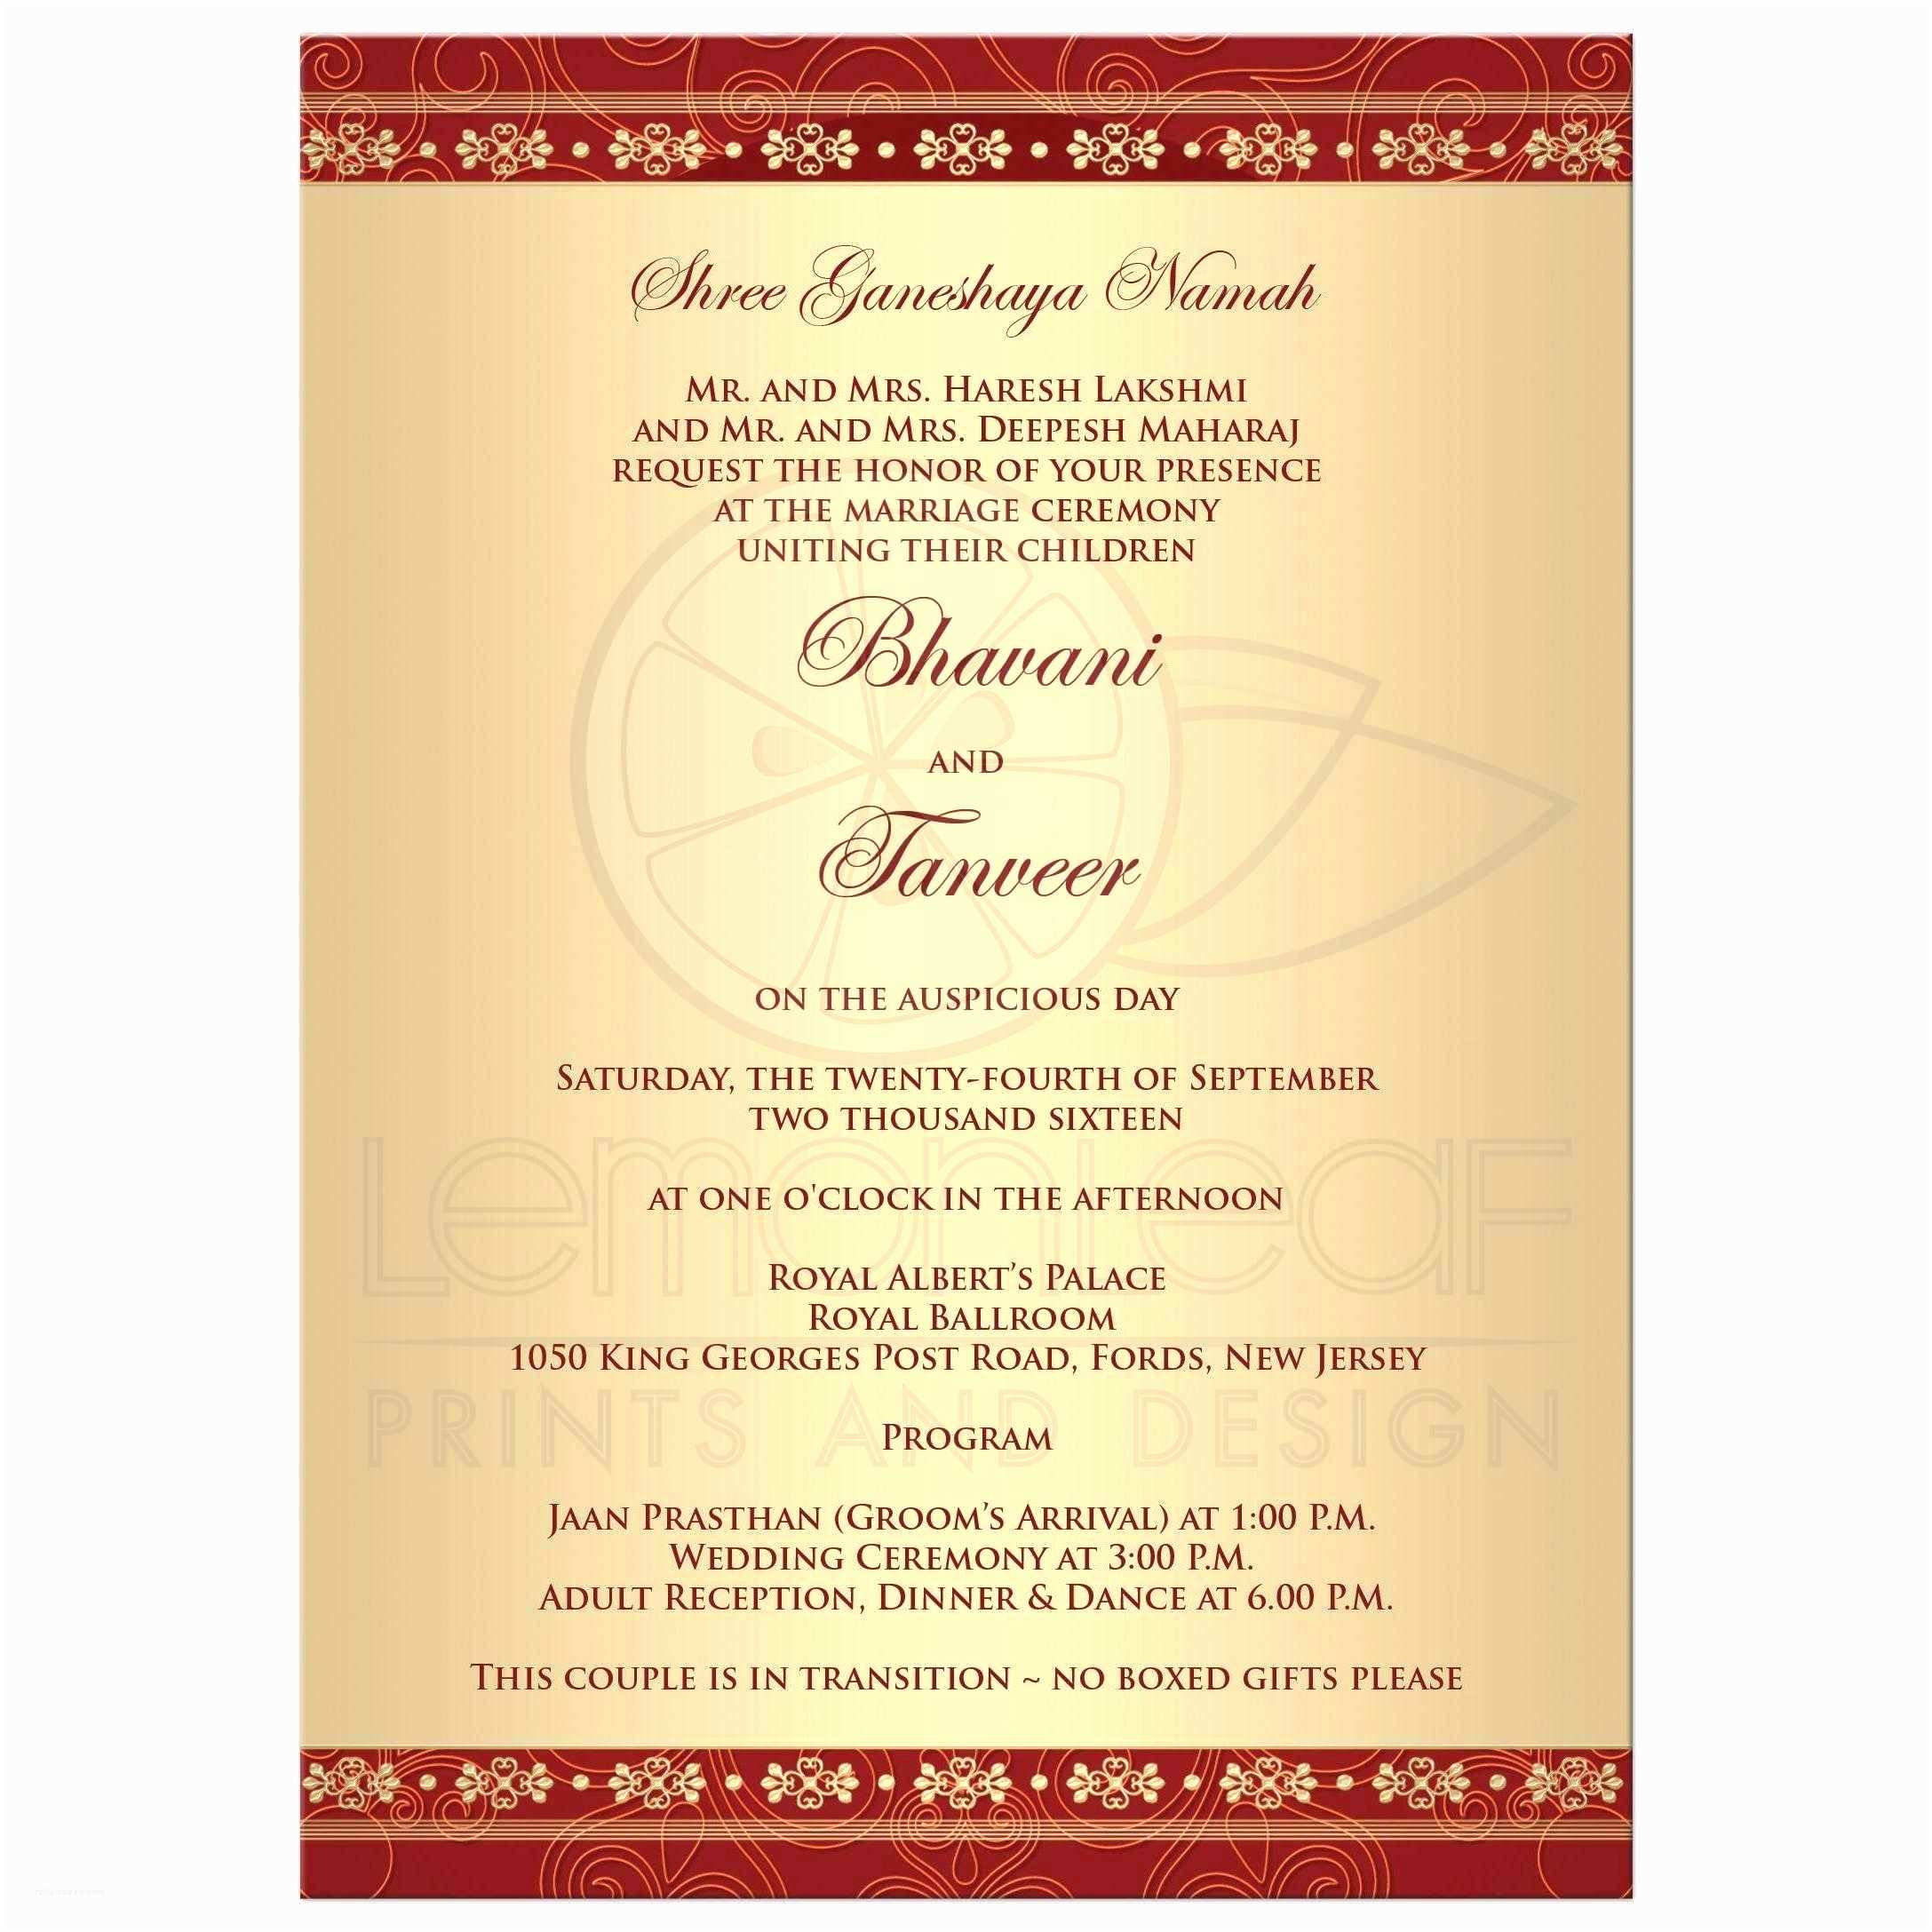 Wedding Invitation Website Line Indian Wedding Invitation Website Free Luxury Chic